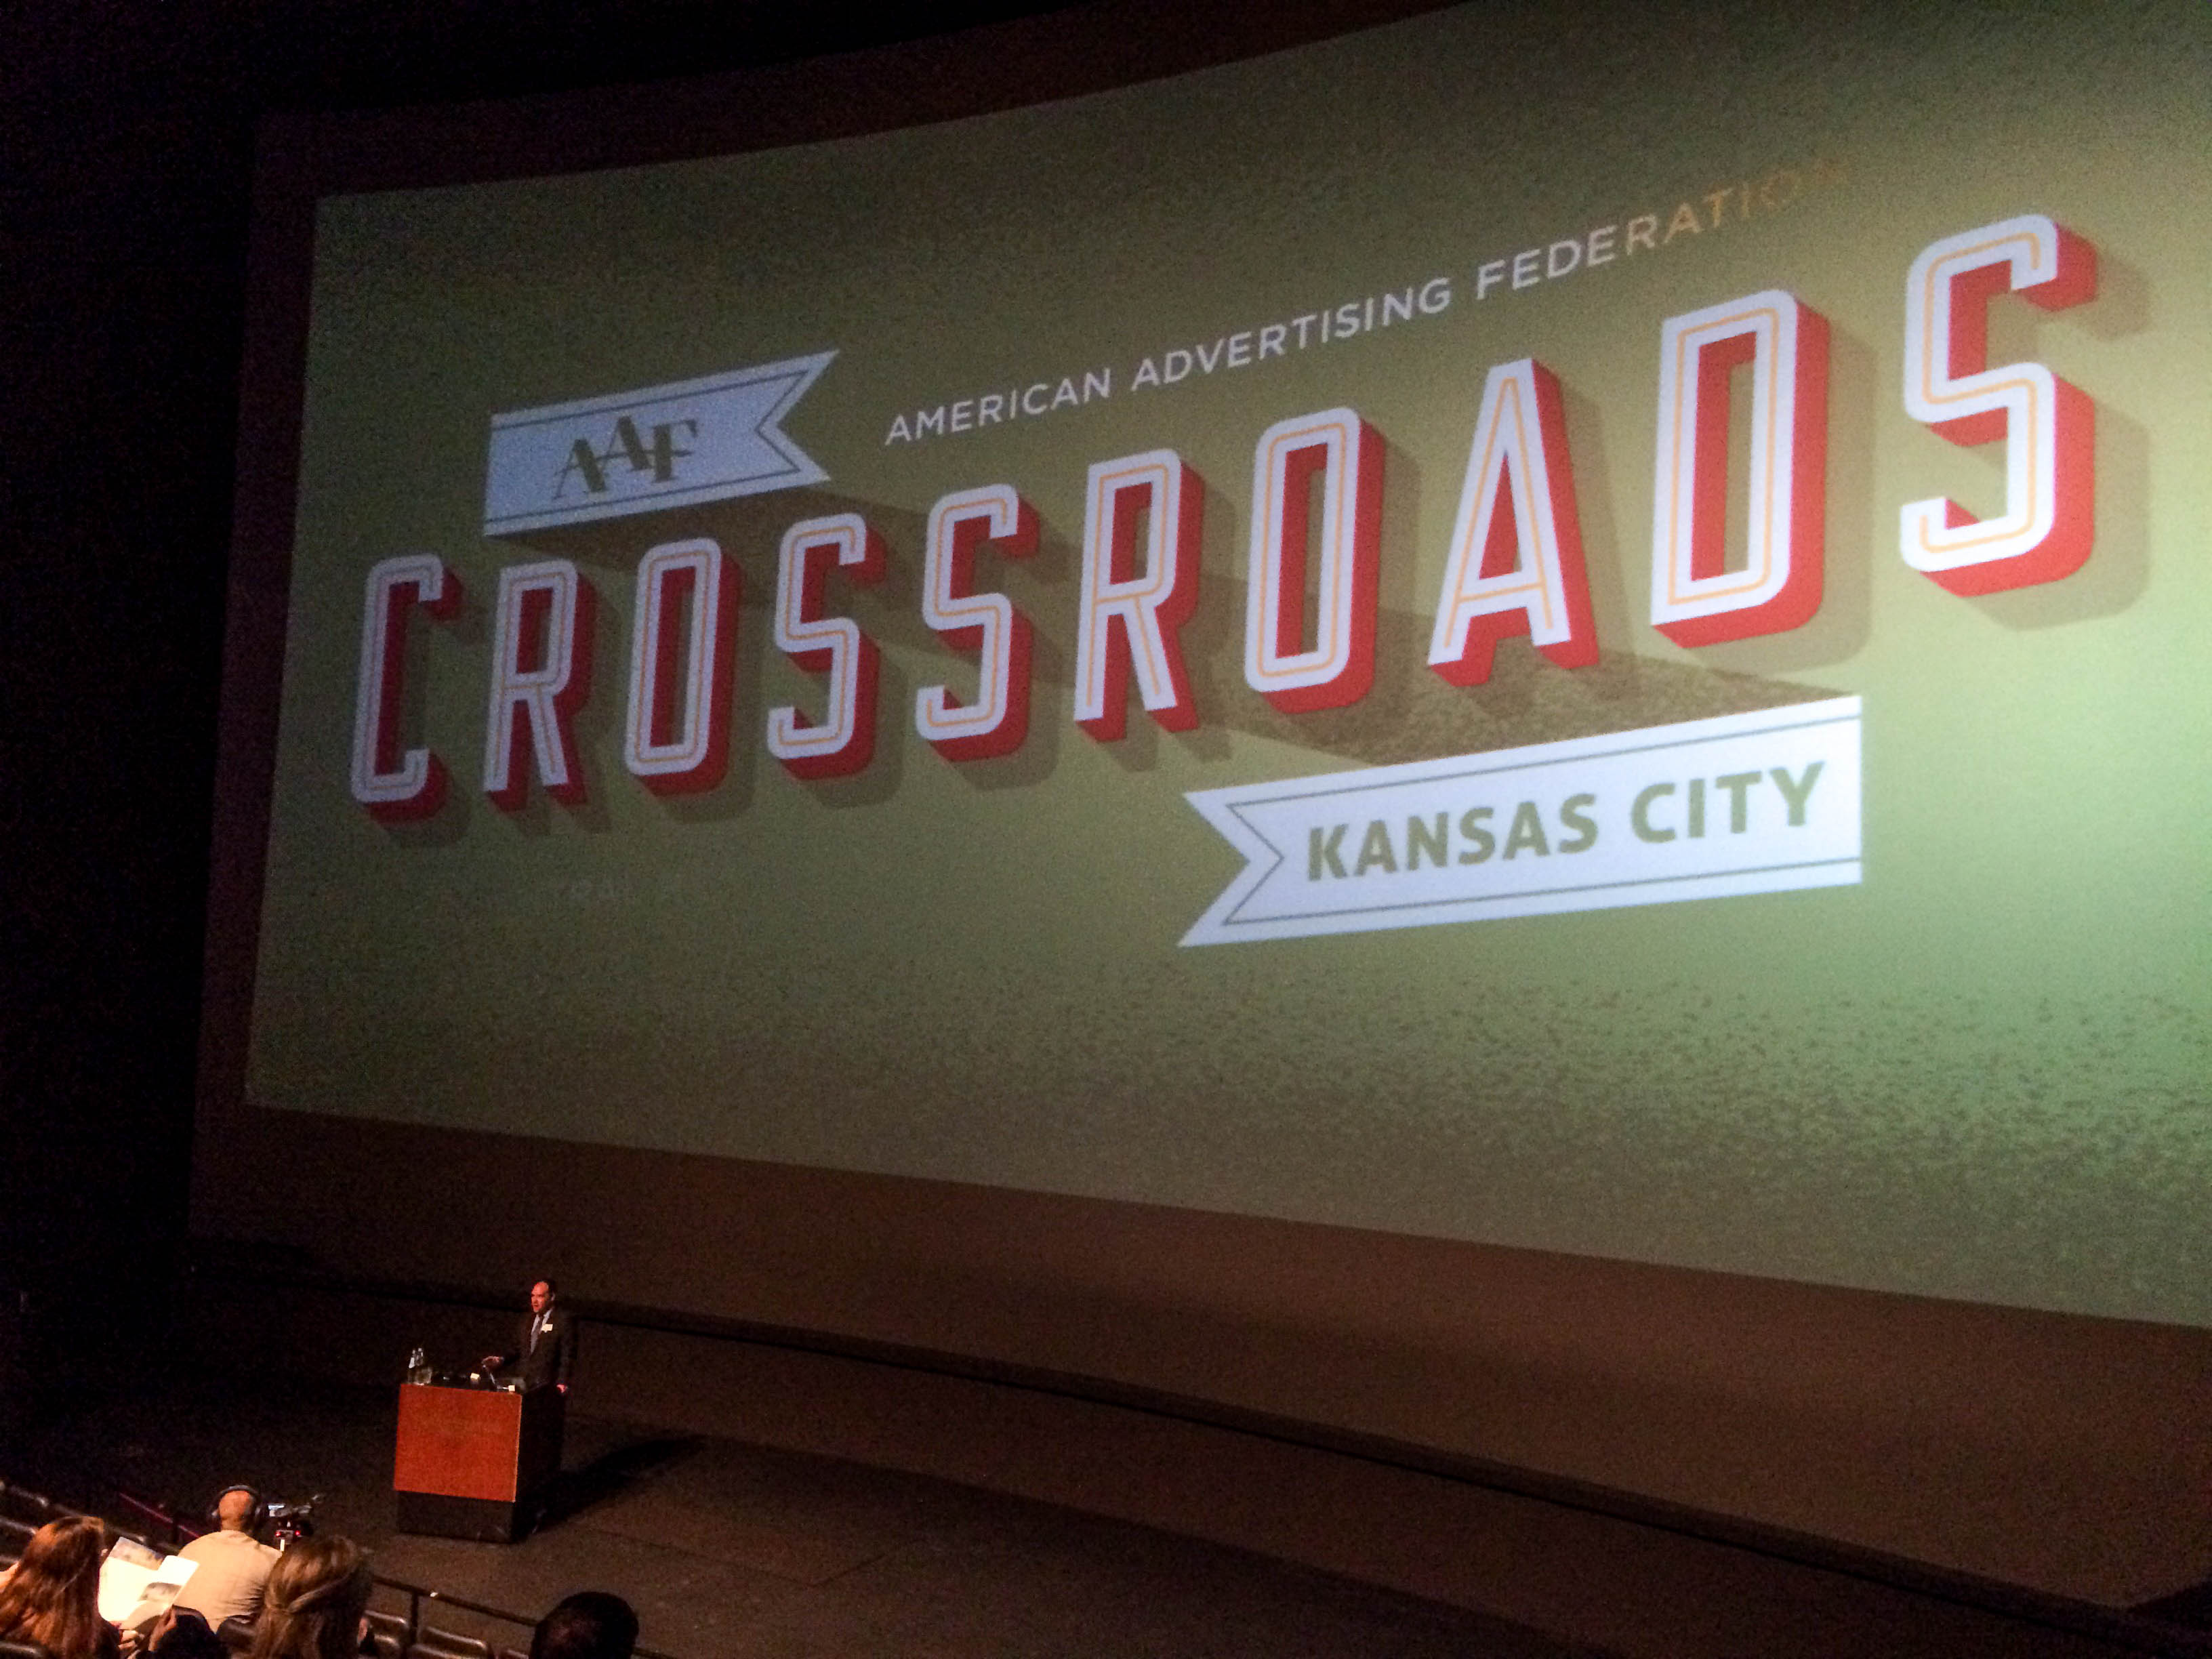 AAF Crossroads in Kansas City